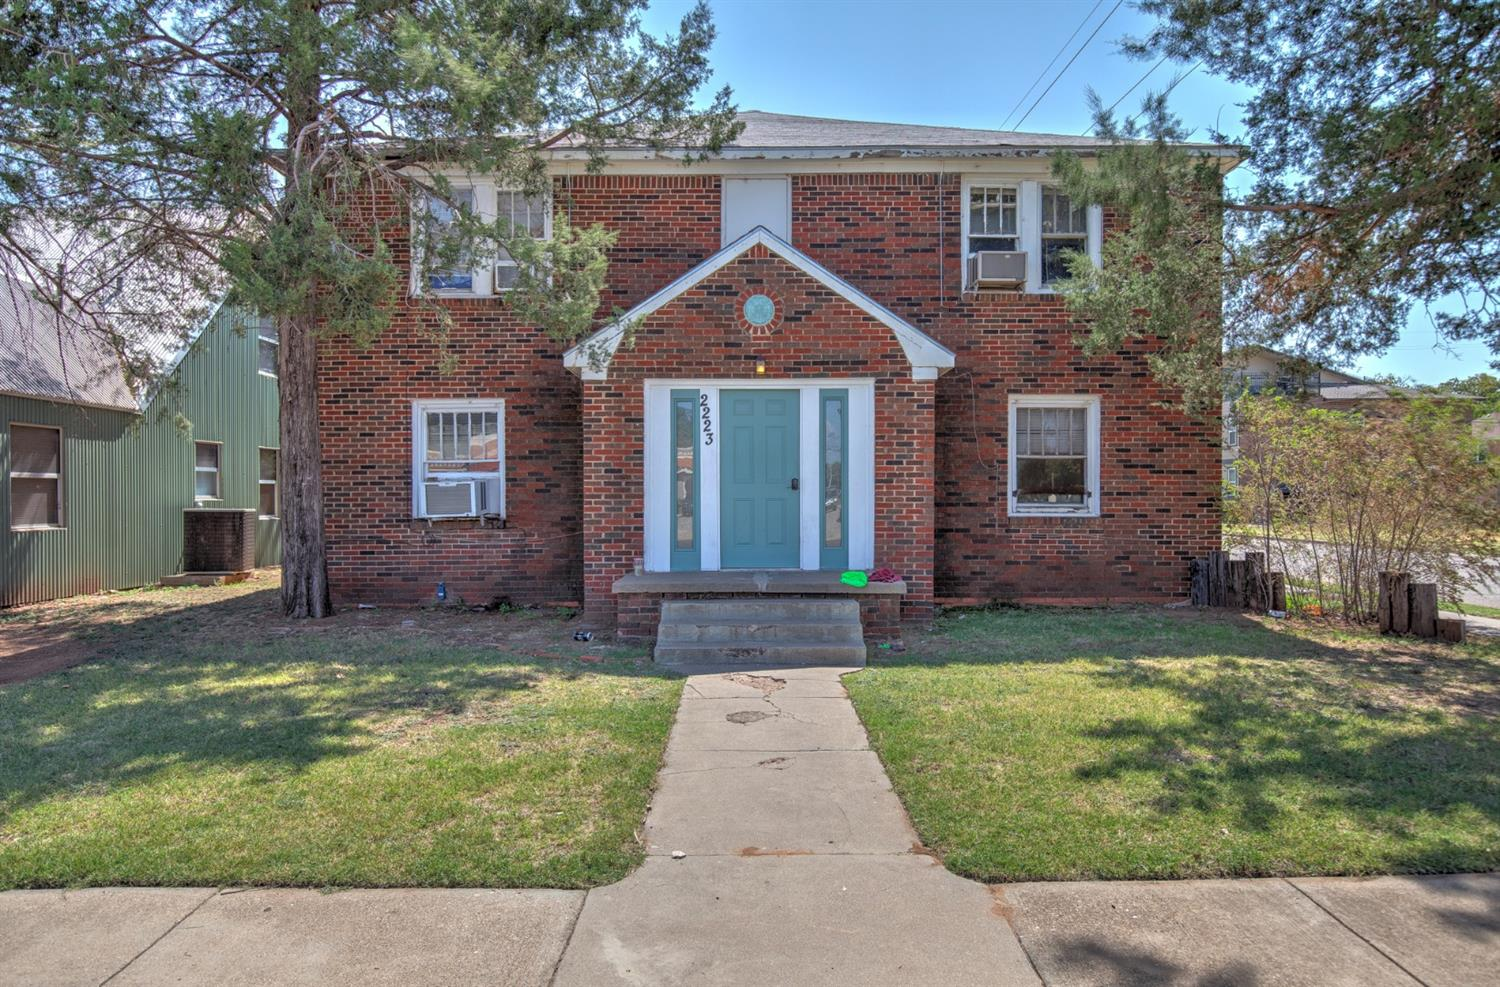 2223 15th Street, Lubbock in Lubbock County, TX 79401 Home for Sale